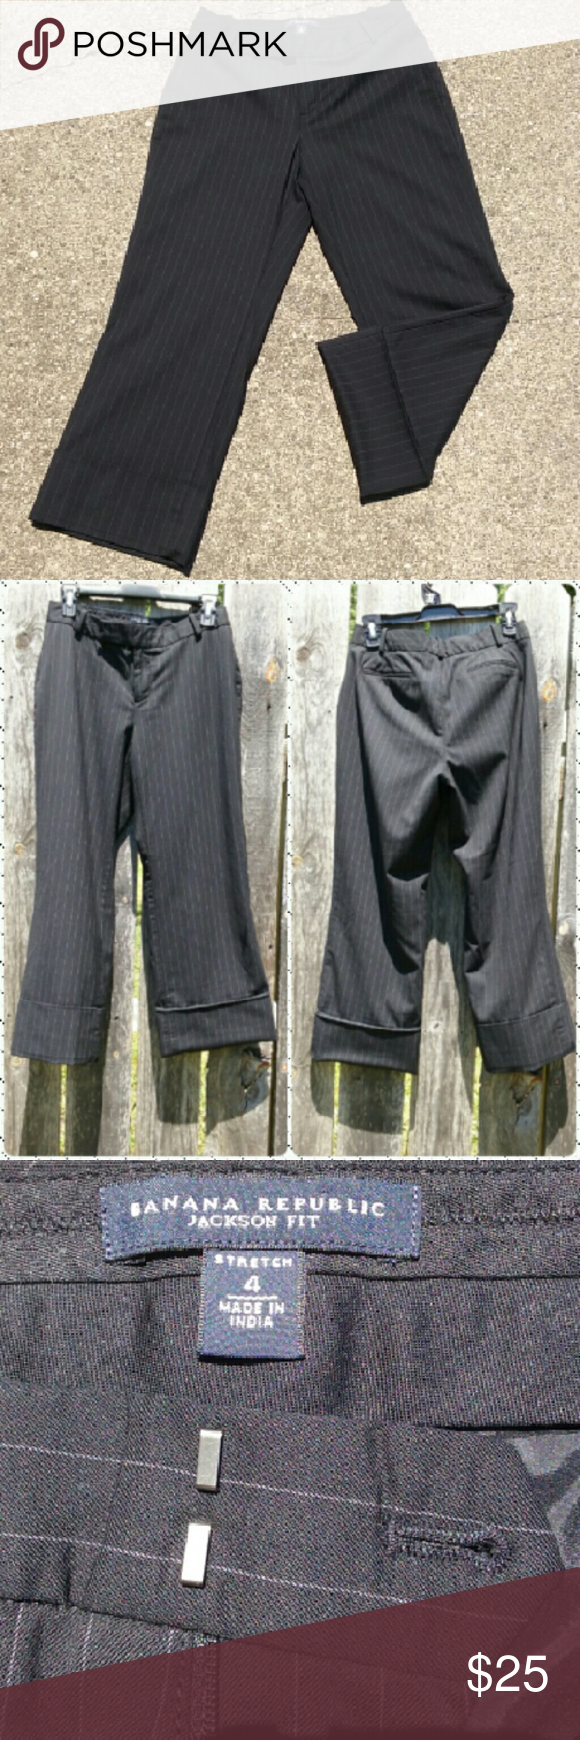 "Jackson Fit capri dress pants Black with soft silver lines. Shell is 94% wool, 4% spandex, 2% other fiber. Lining is 95% poly, 5% spandex. Dry clean only. Color is true to first picture. Next to new. Inseam is 25"" Banana Republic Pants Ankle & Cropped"